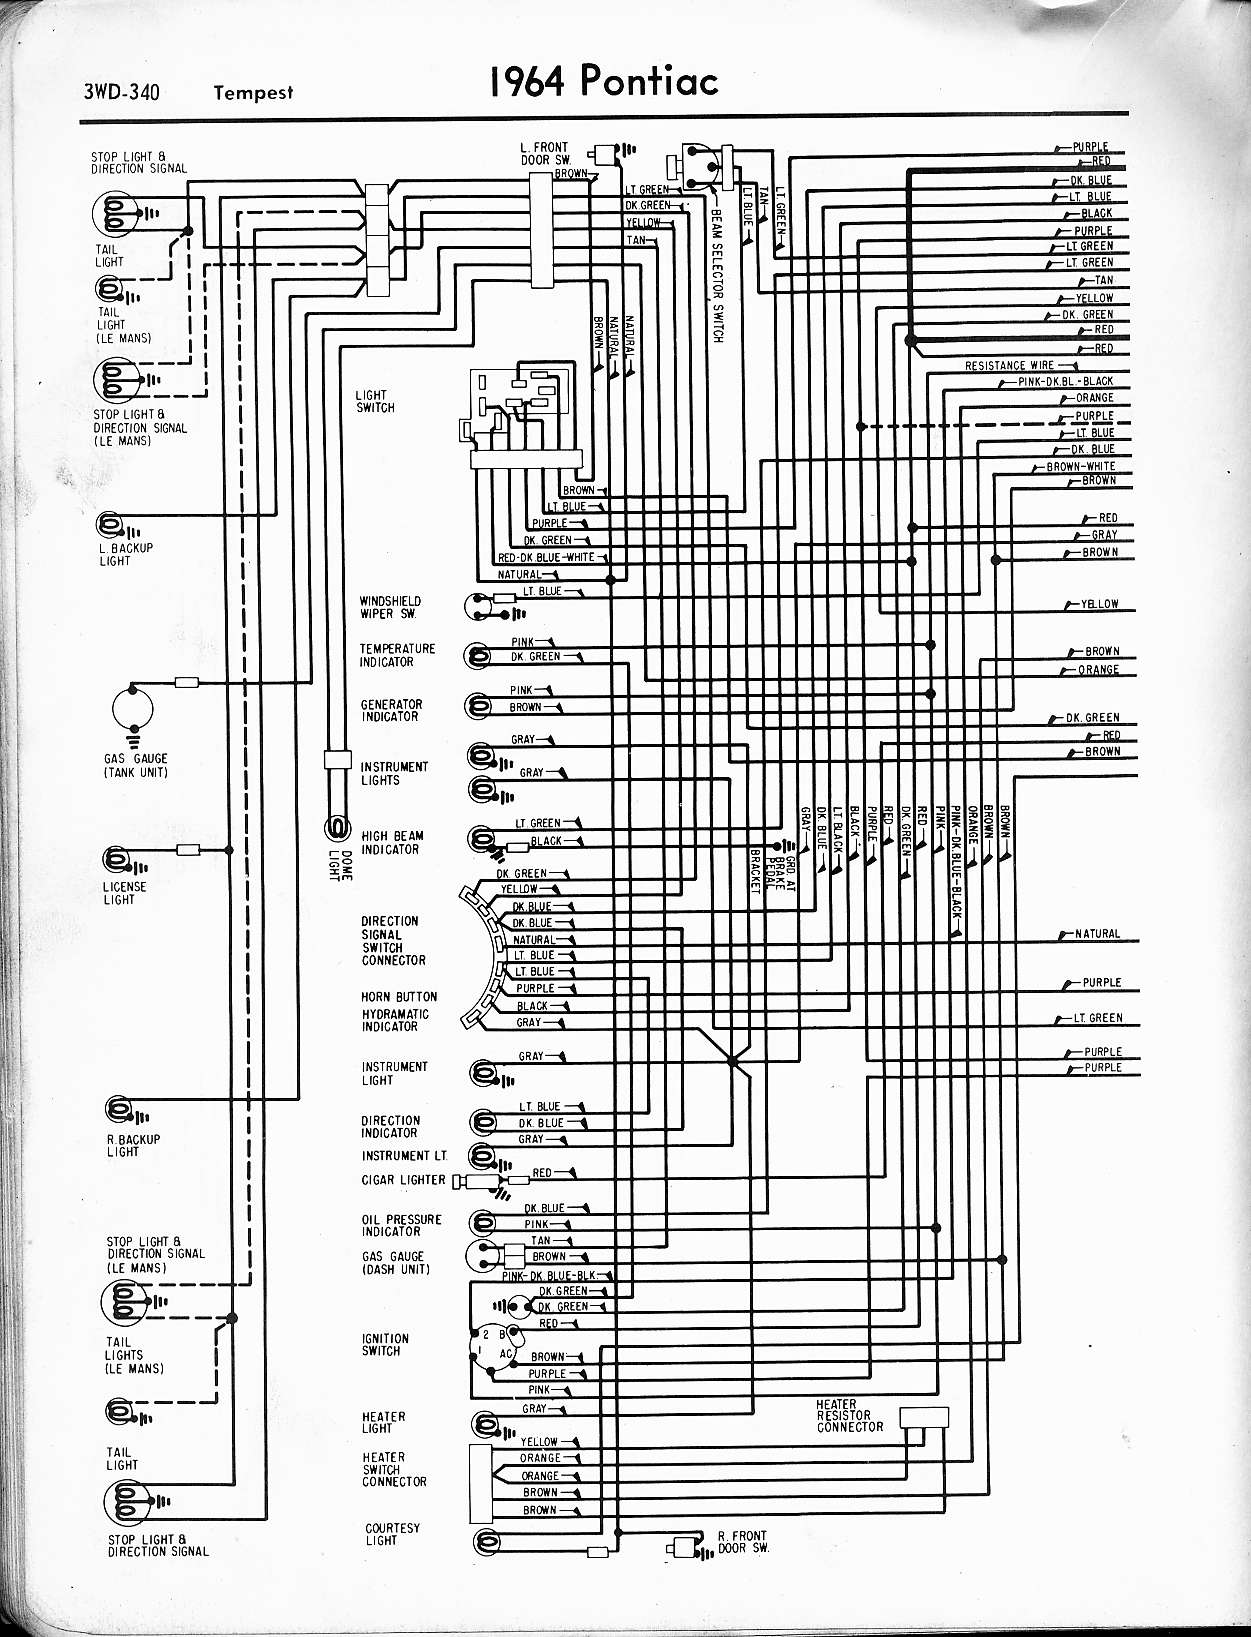 Cj V6 Wire Diagram | basic electronics wiring diagram Cj V Wiring Diagram on camaro wiring diagram, cj5 hardtop, defender 90 wiring diagram, cj7 wiring diagram, ramcharger wiring diagram, land cruiser wiring diagram, yukon wiring diagram, mustang wiring diagram, renegade wiring diagram, regal wiring diagram, grand wagoneer wiring diagram, amx wiring diagram, cj3b wiring diagram, cj2a wiring diagram, simple chopper wiring diagram, concord wiring diagram, m38a1 wiring diagram, yj wiring diagram, willys wiring diagram,